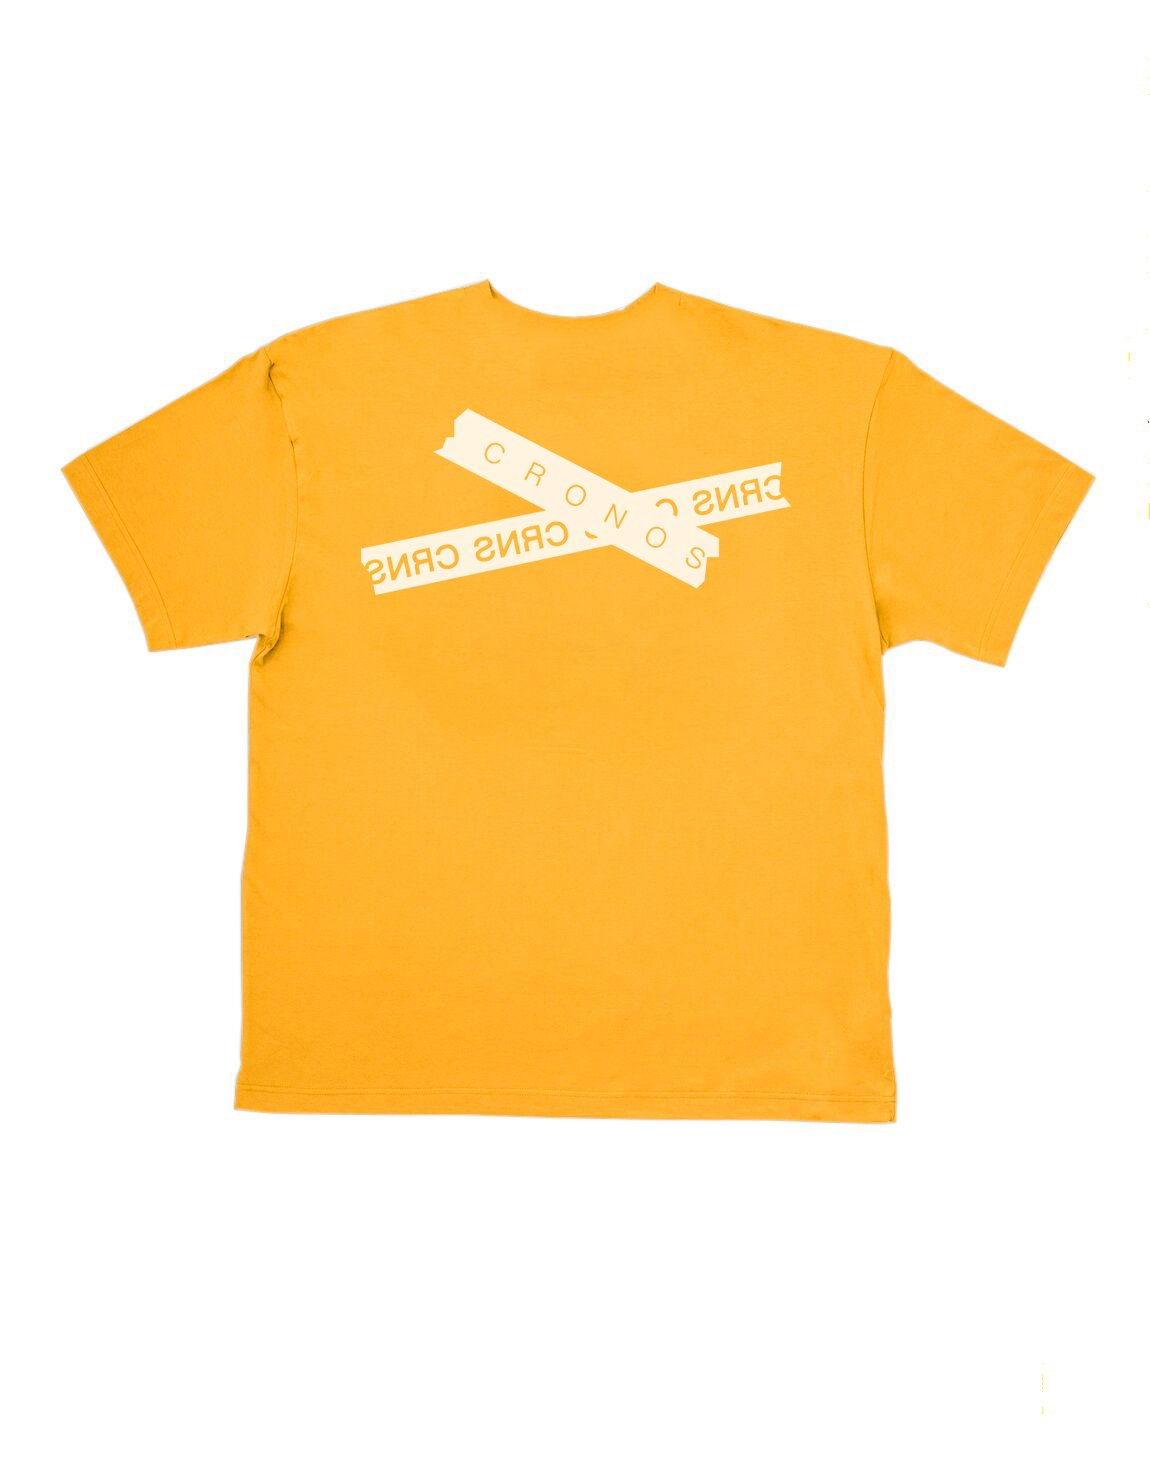 CRONOS TAPE LOGO OVER SIZE T-SHIRTS【YELLOW】